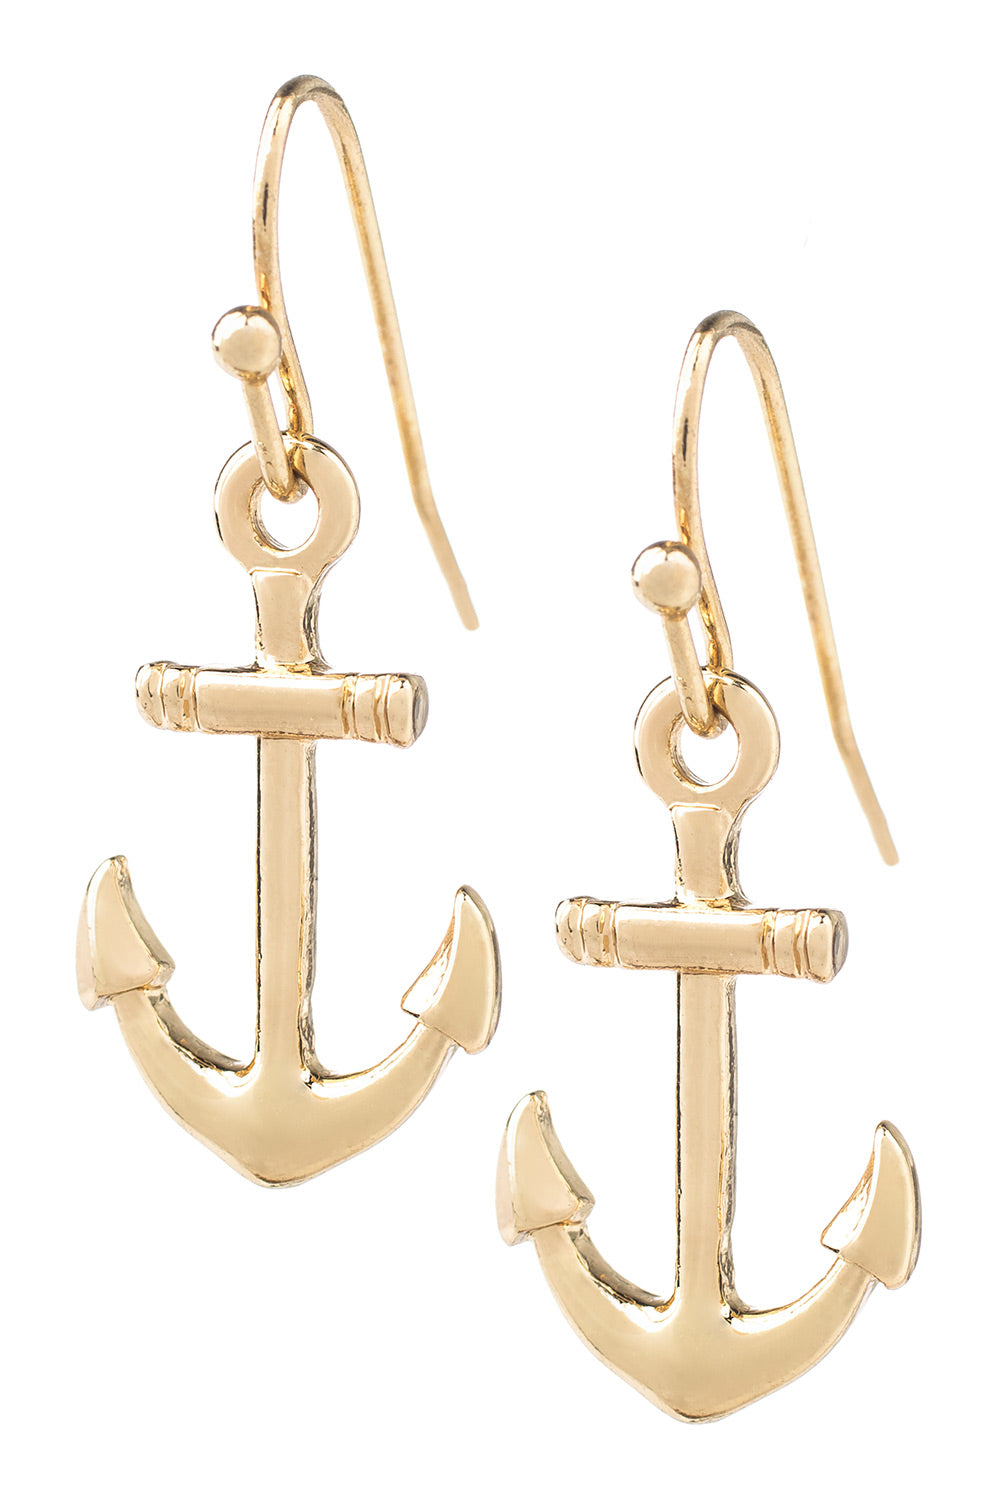 Type 1 Disembark Earrings